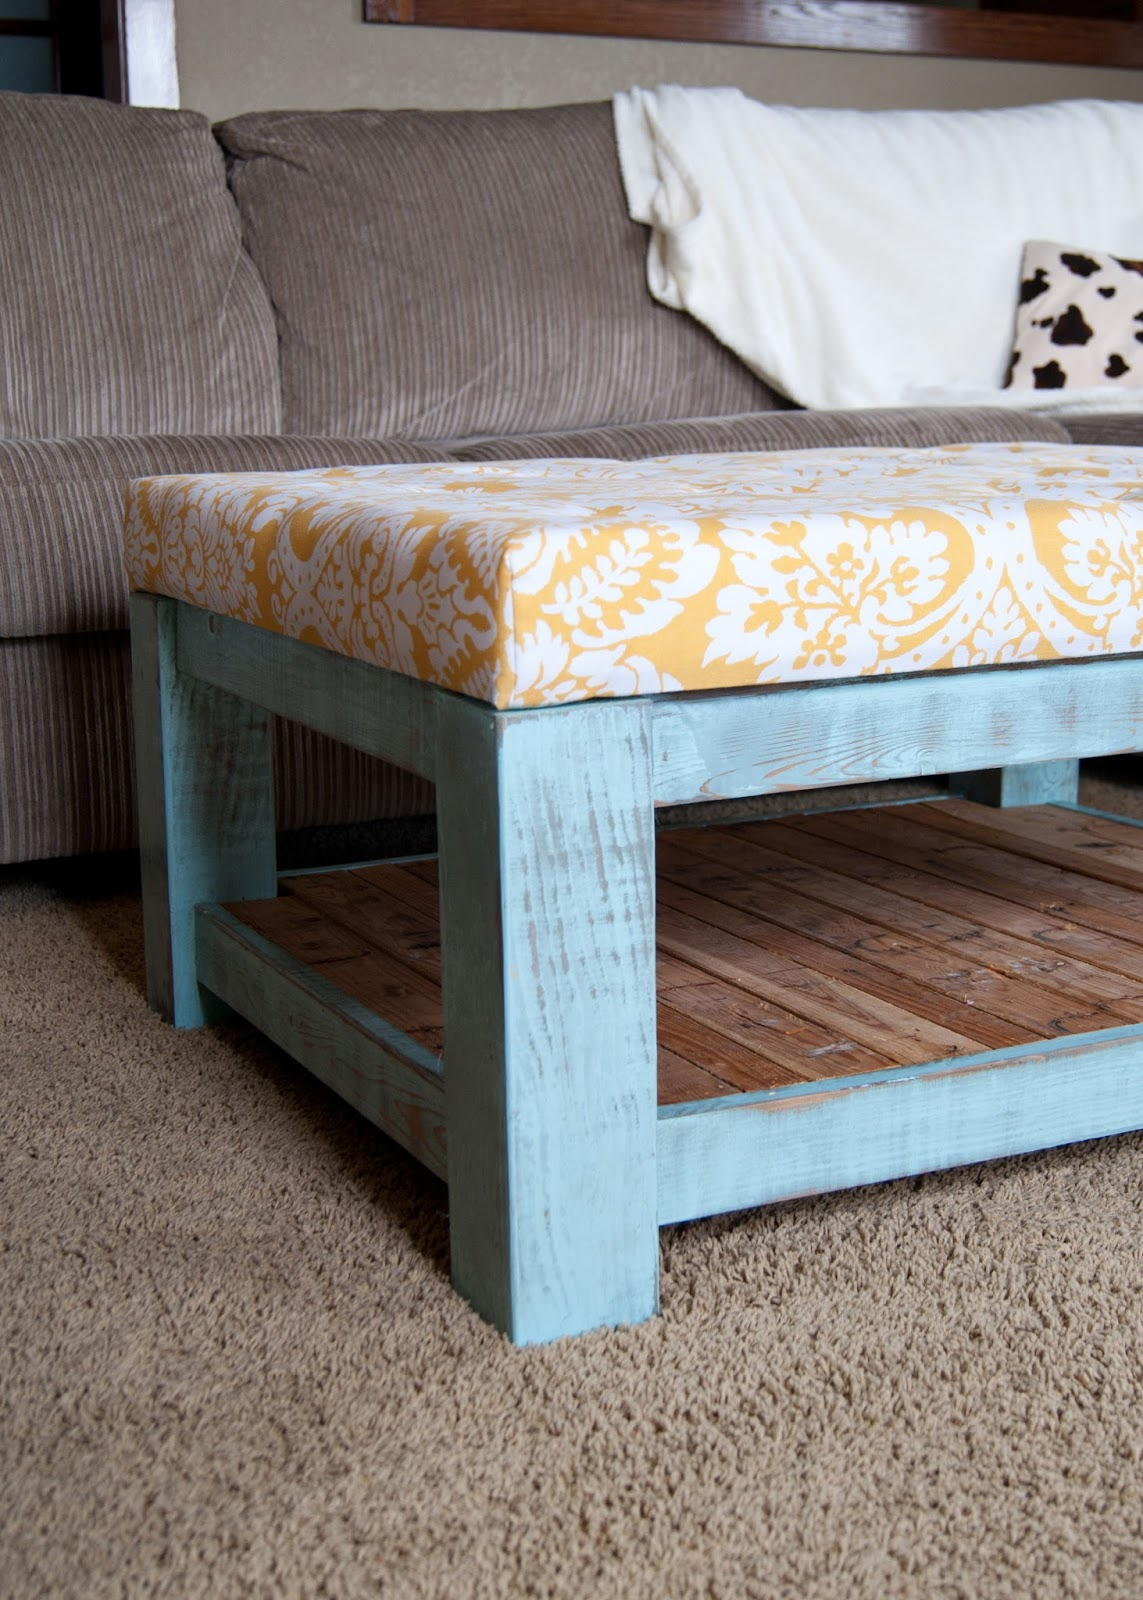 DIY Ottoman - Cut List and Instructions